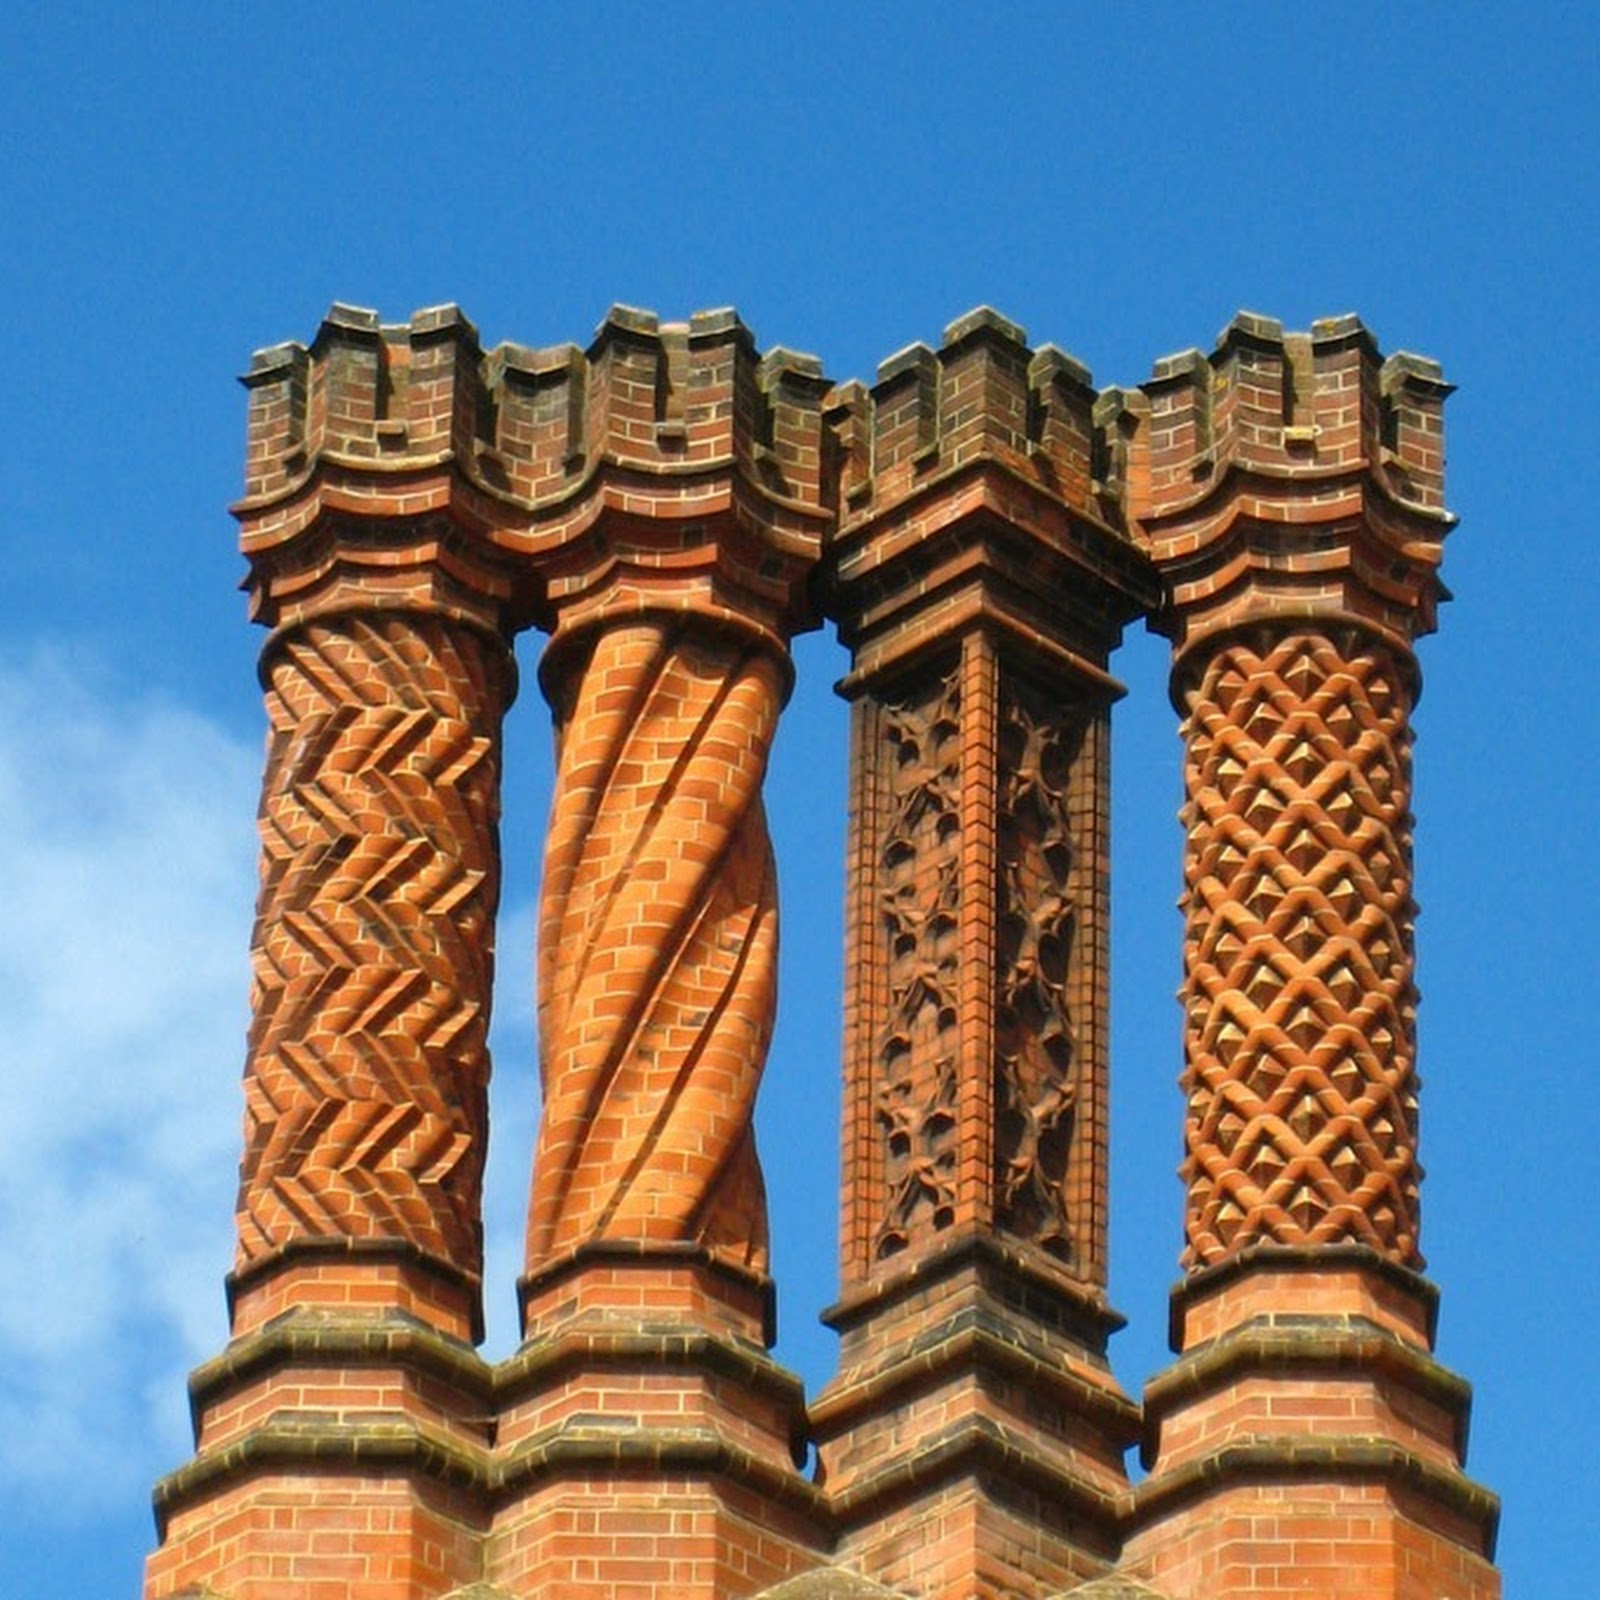 The Decorative Chimneys of Hampton Court Palace